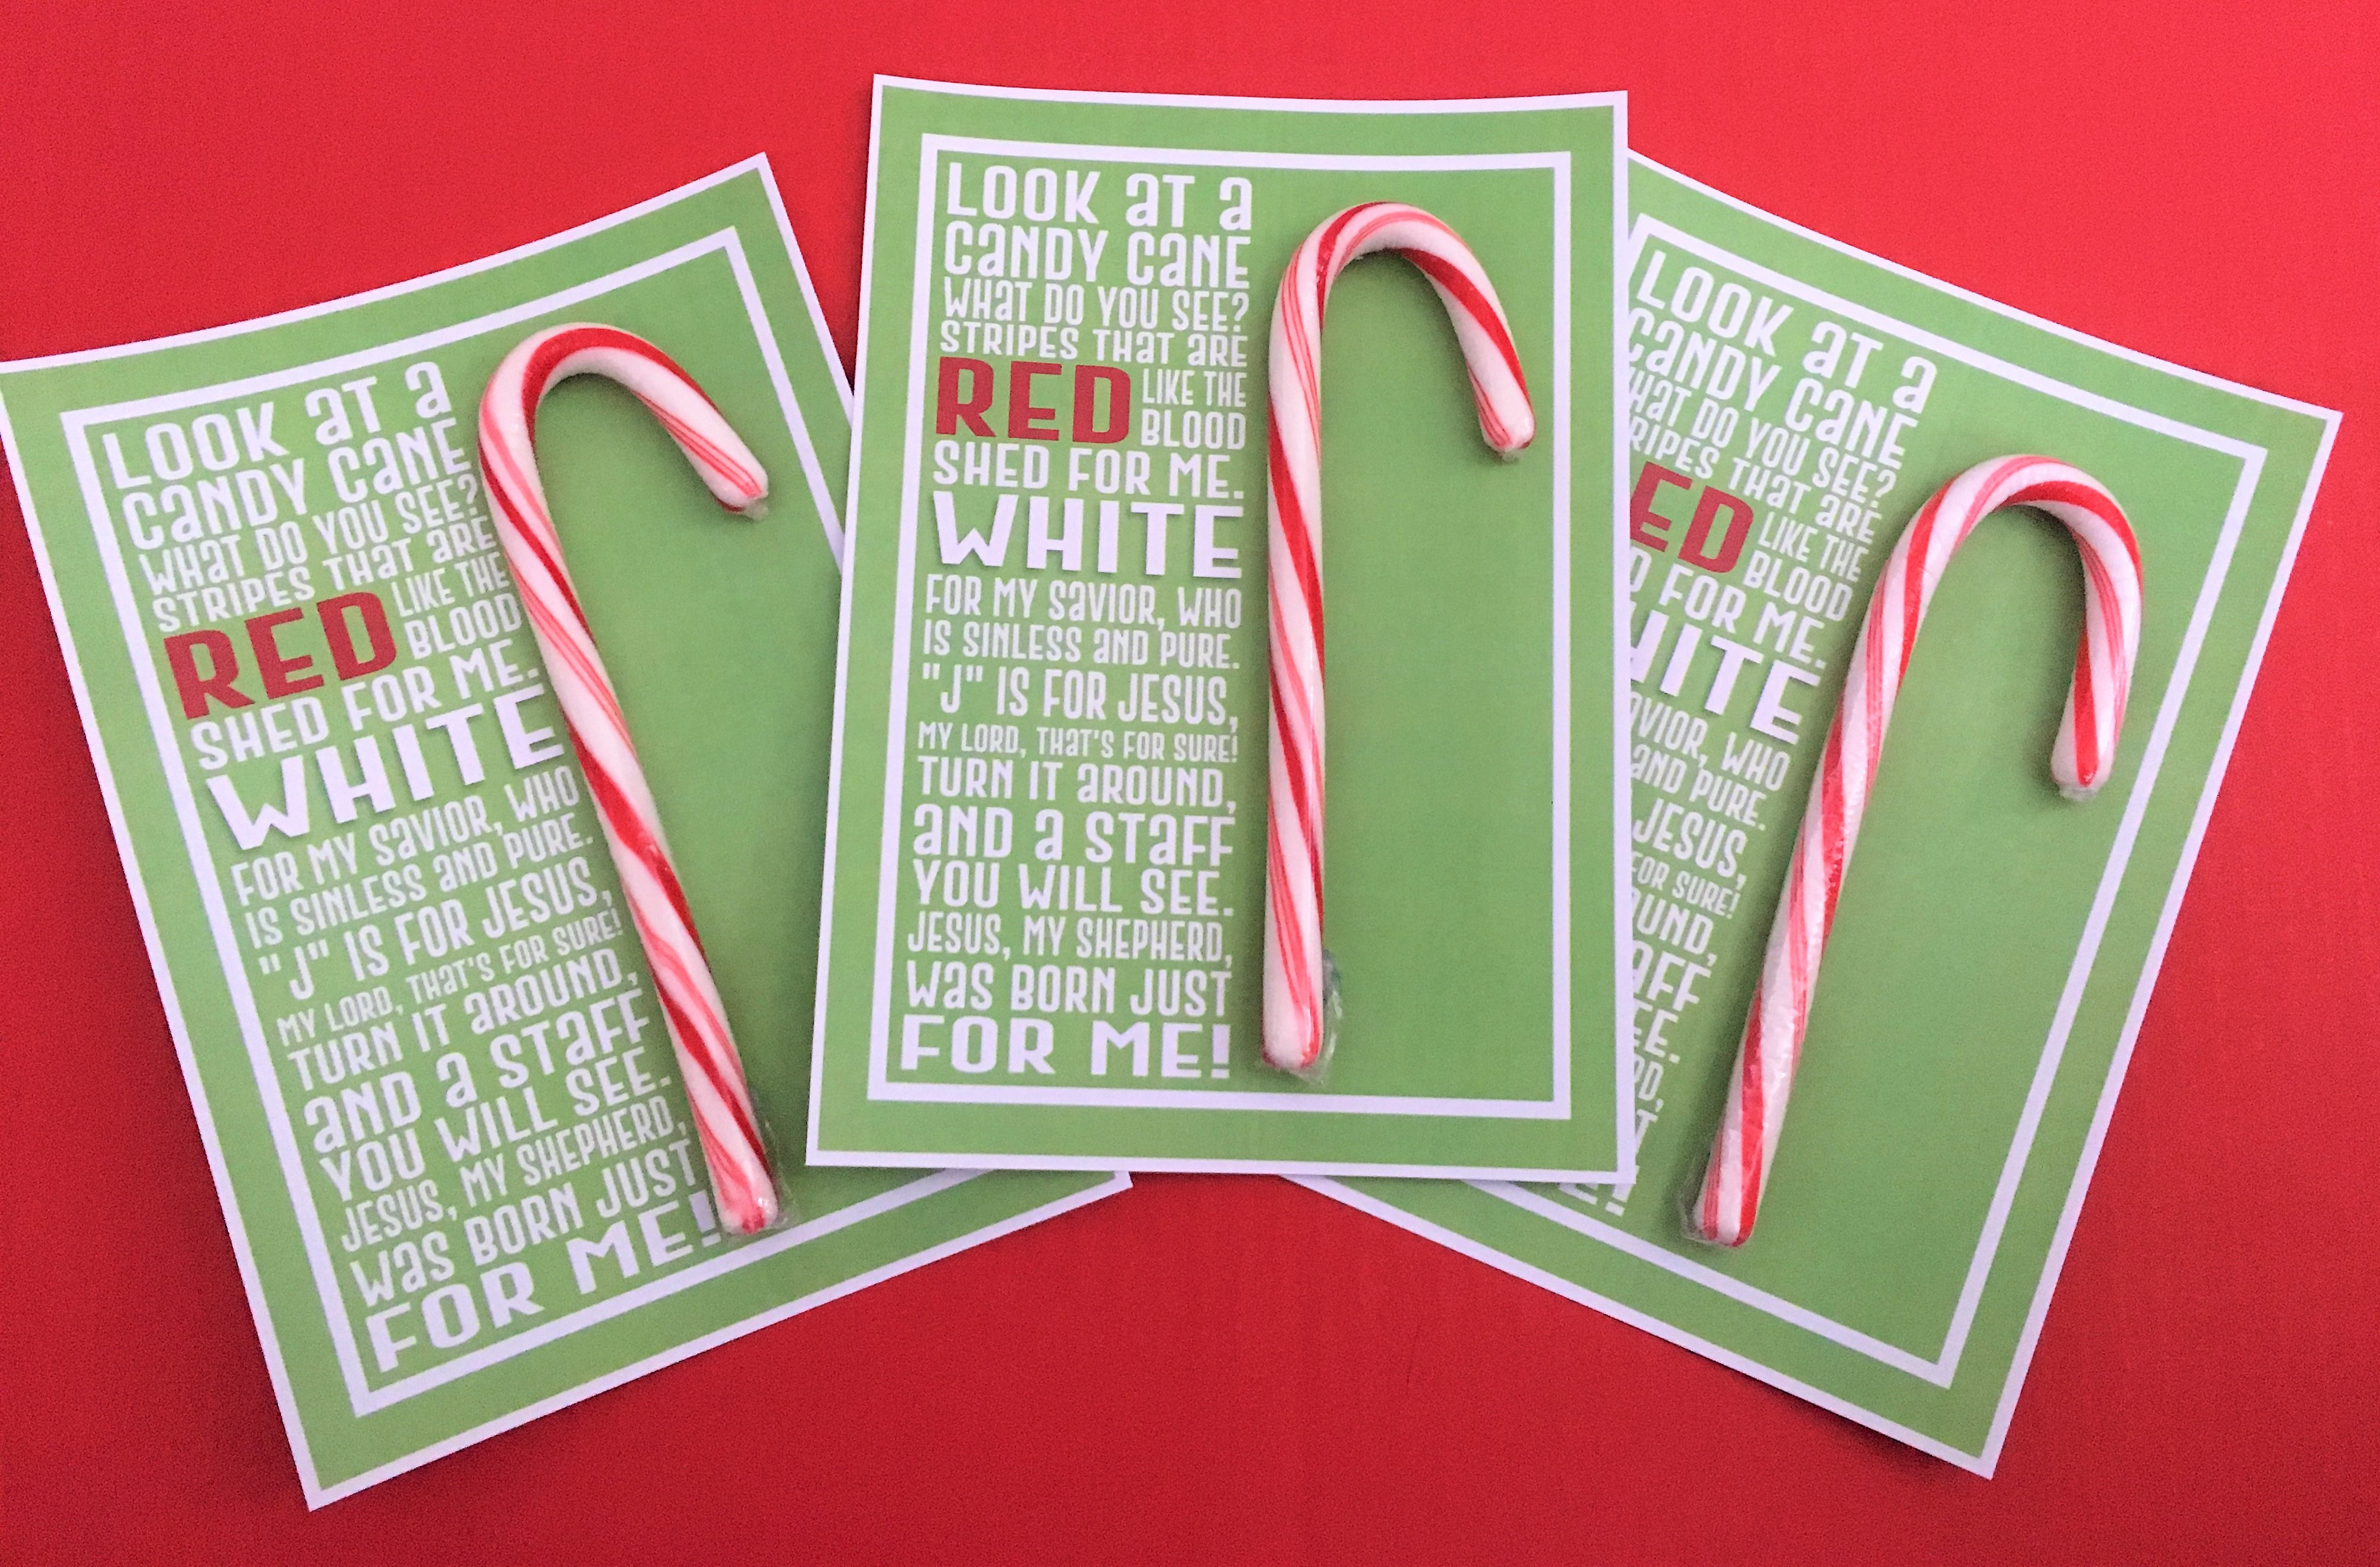 Candy Cane Poem Printable – Deeper Kidmin - Free Printable Candy Cane Poem